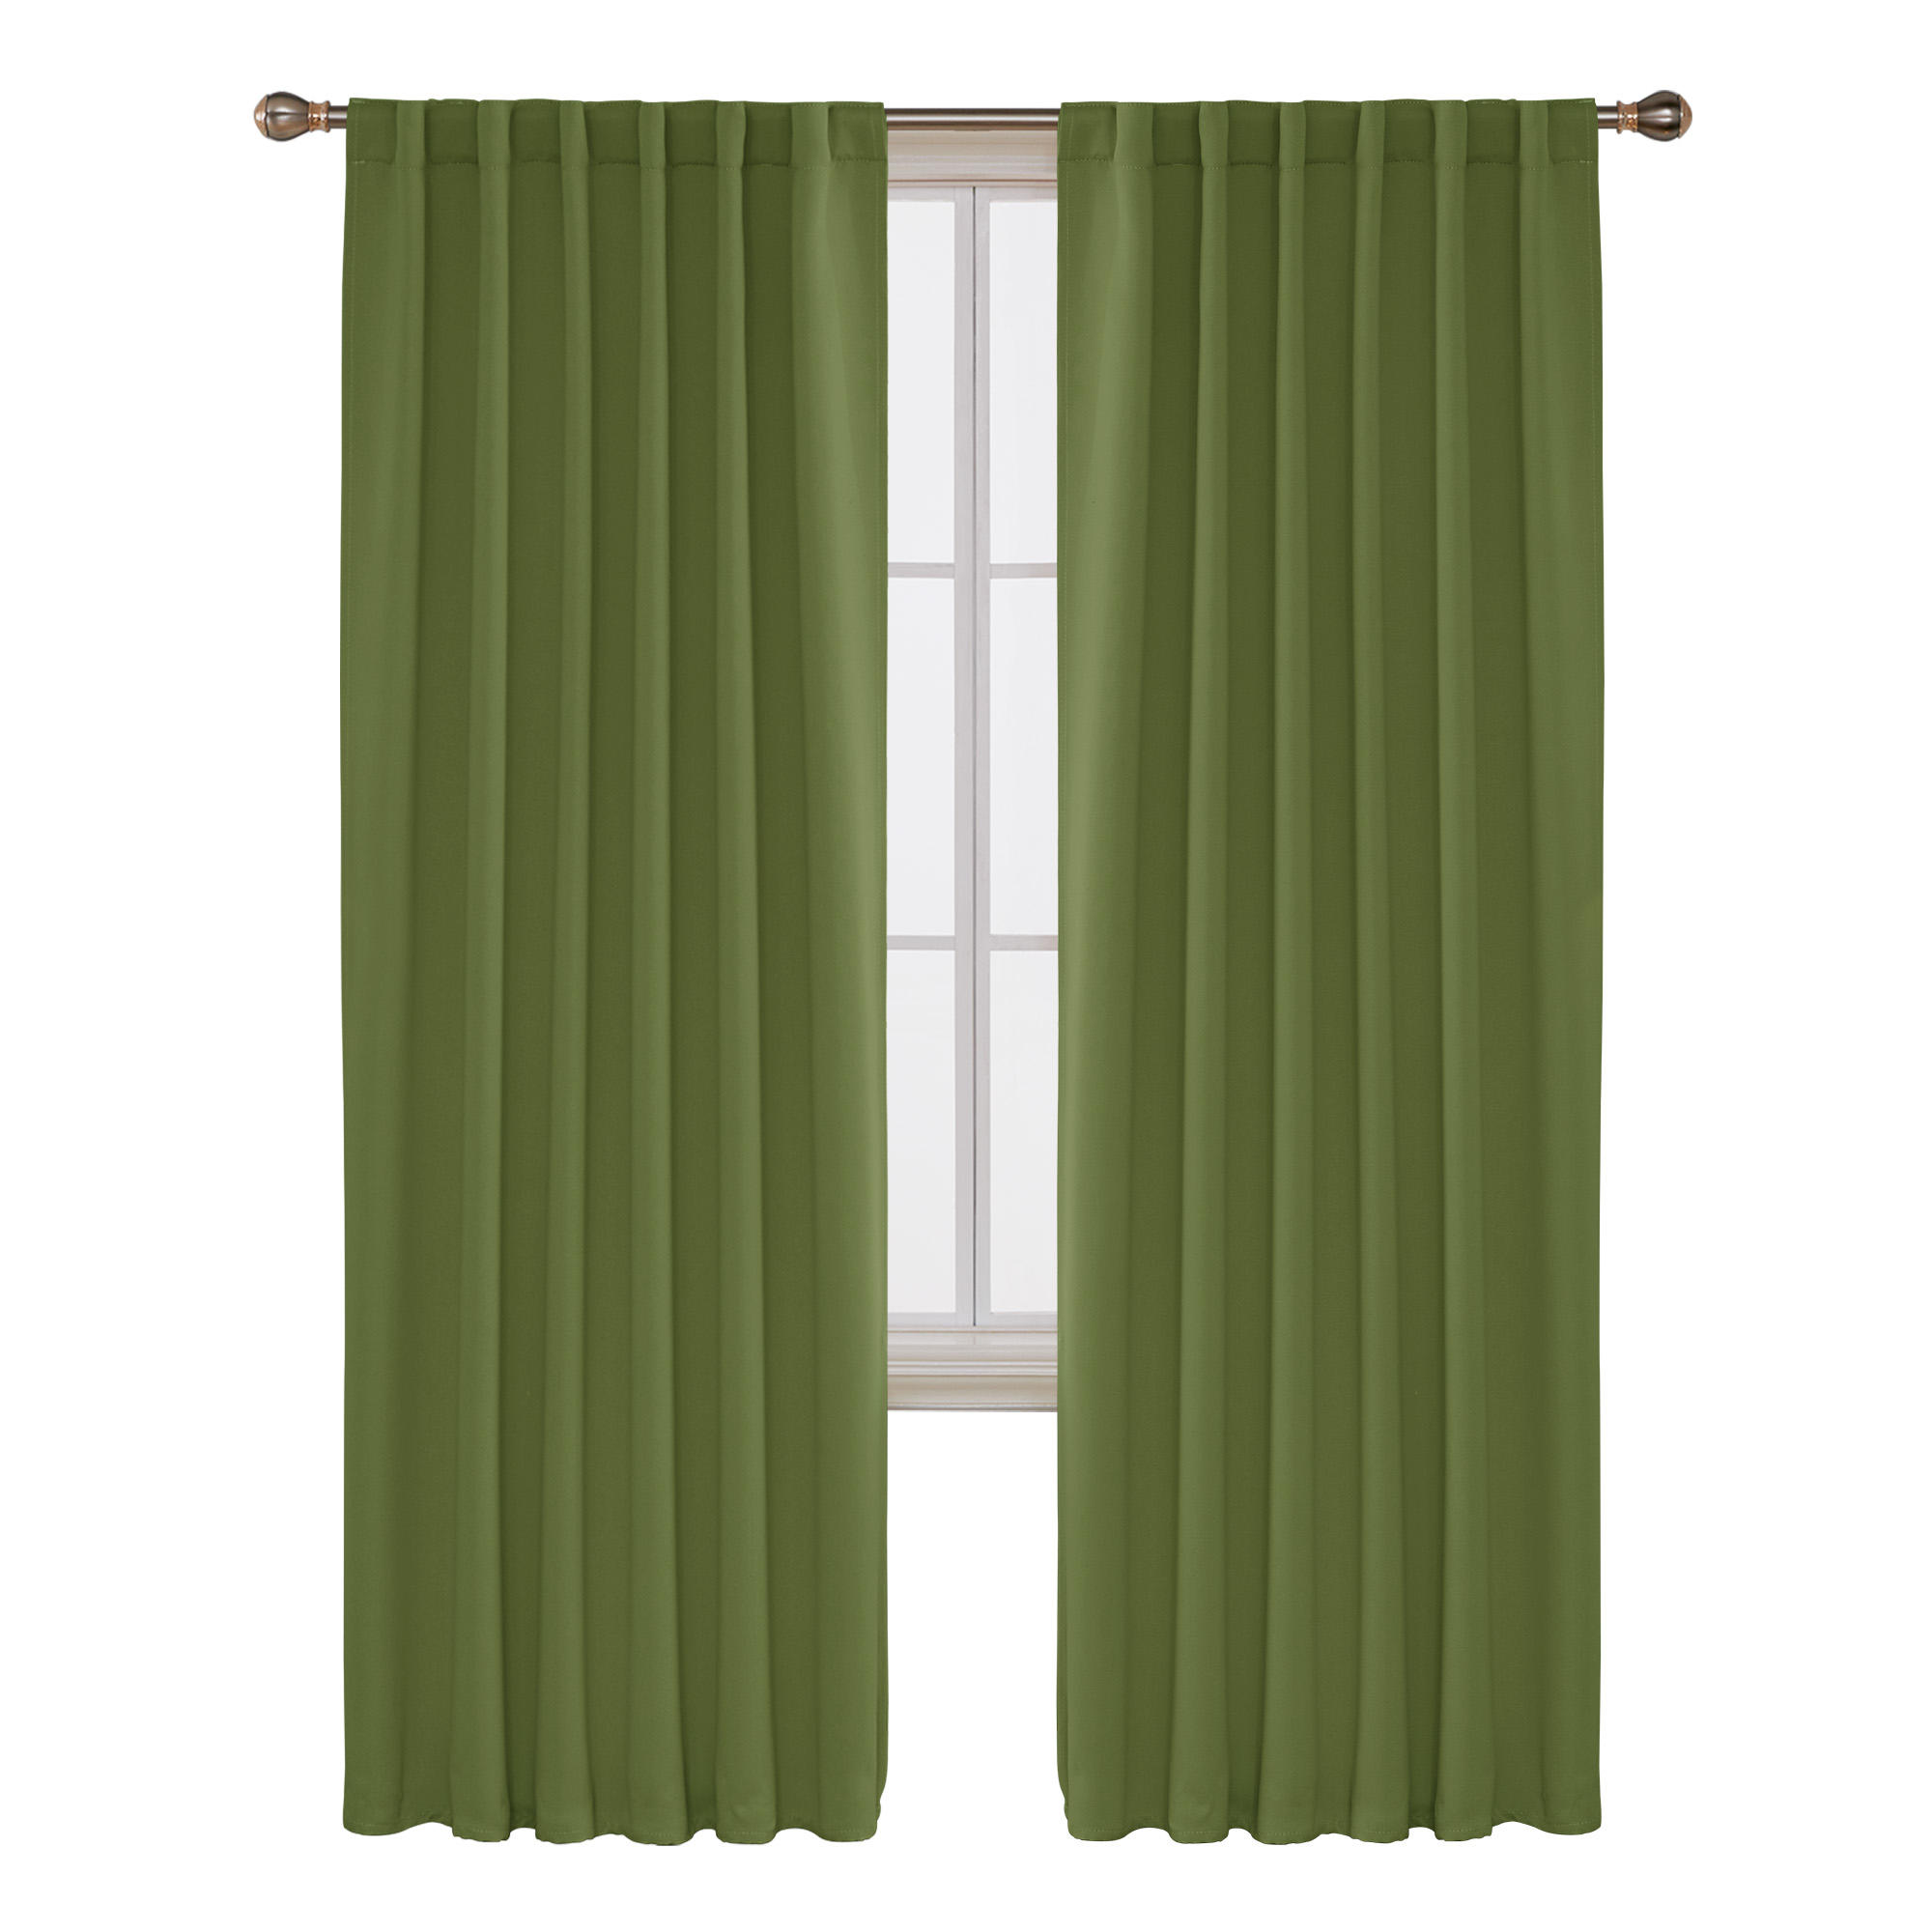 Luxury Classic Green Darkening Drapes Fabric Curtains for the Living Room Hotel Used Curtains